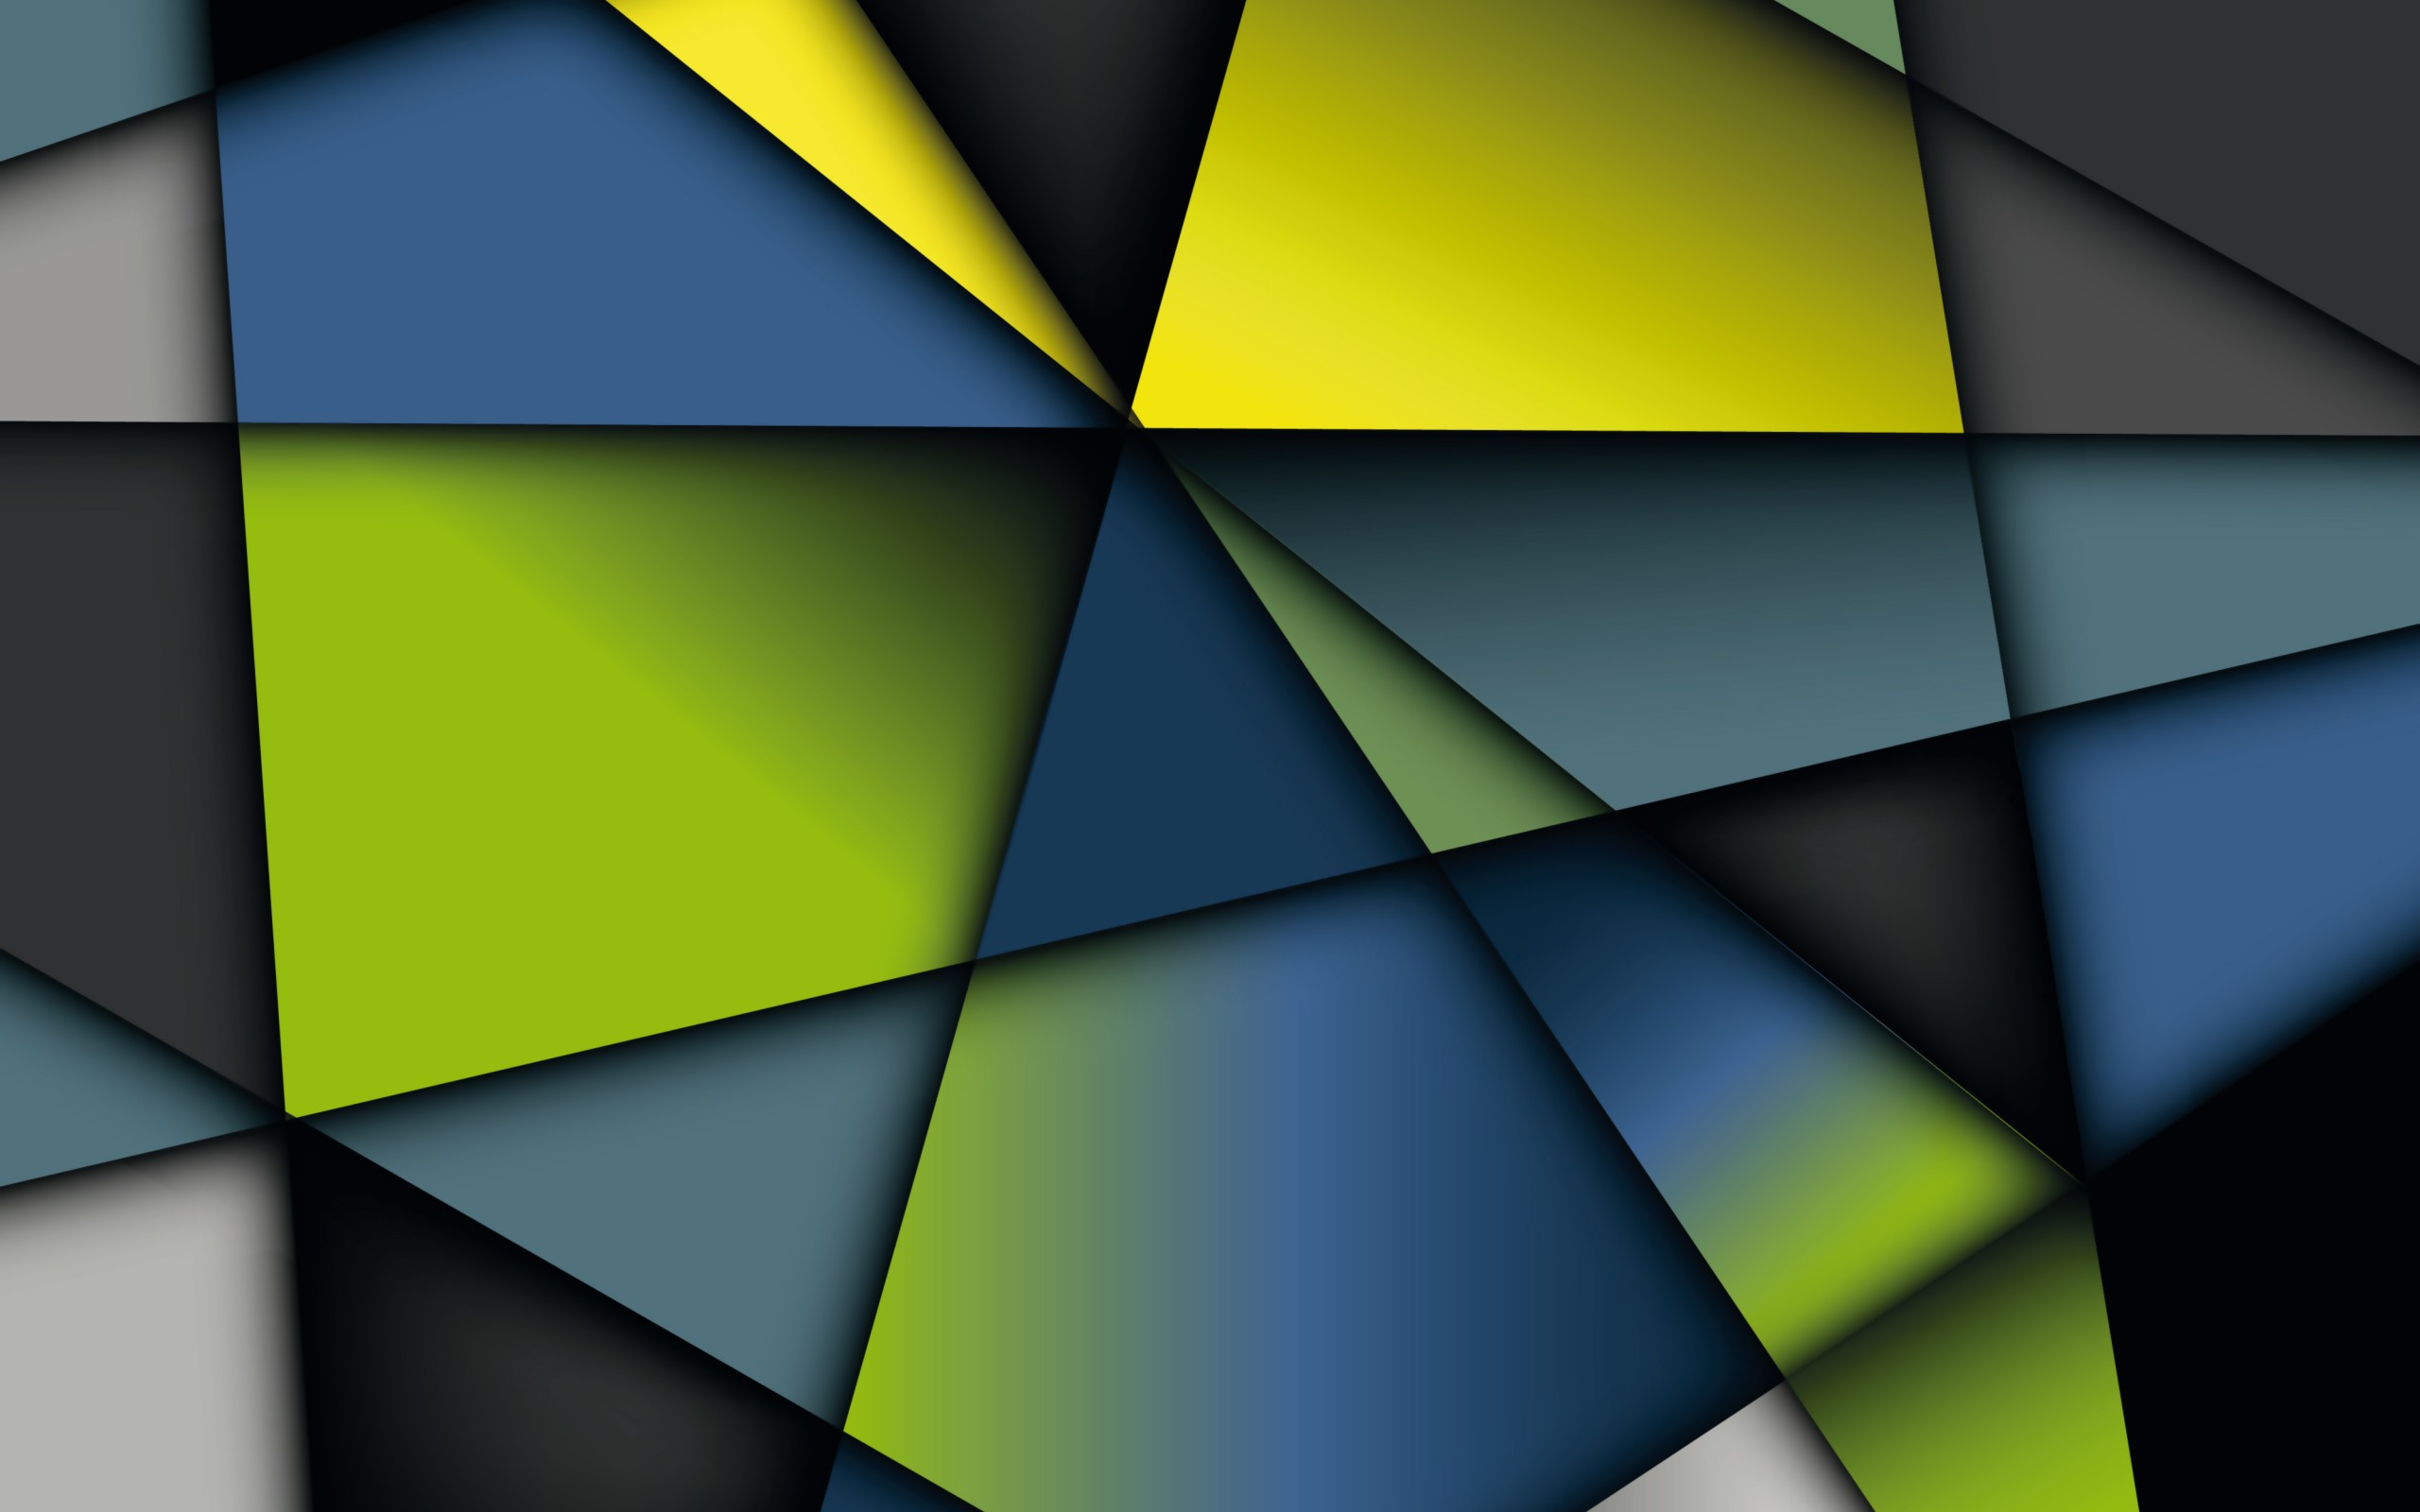 Geometric Shapes Images, Stock Photos Vectors Shutterstock Pictures of all geometric shapes